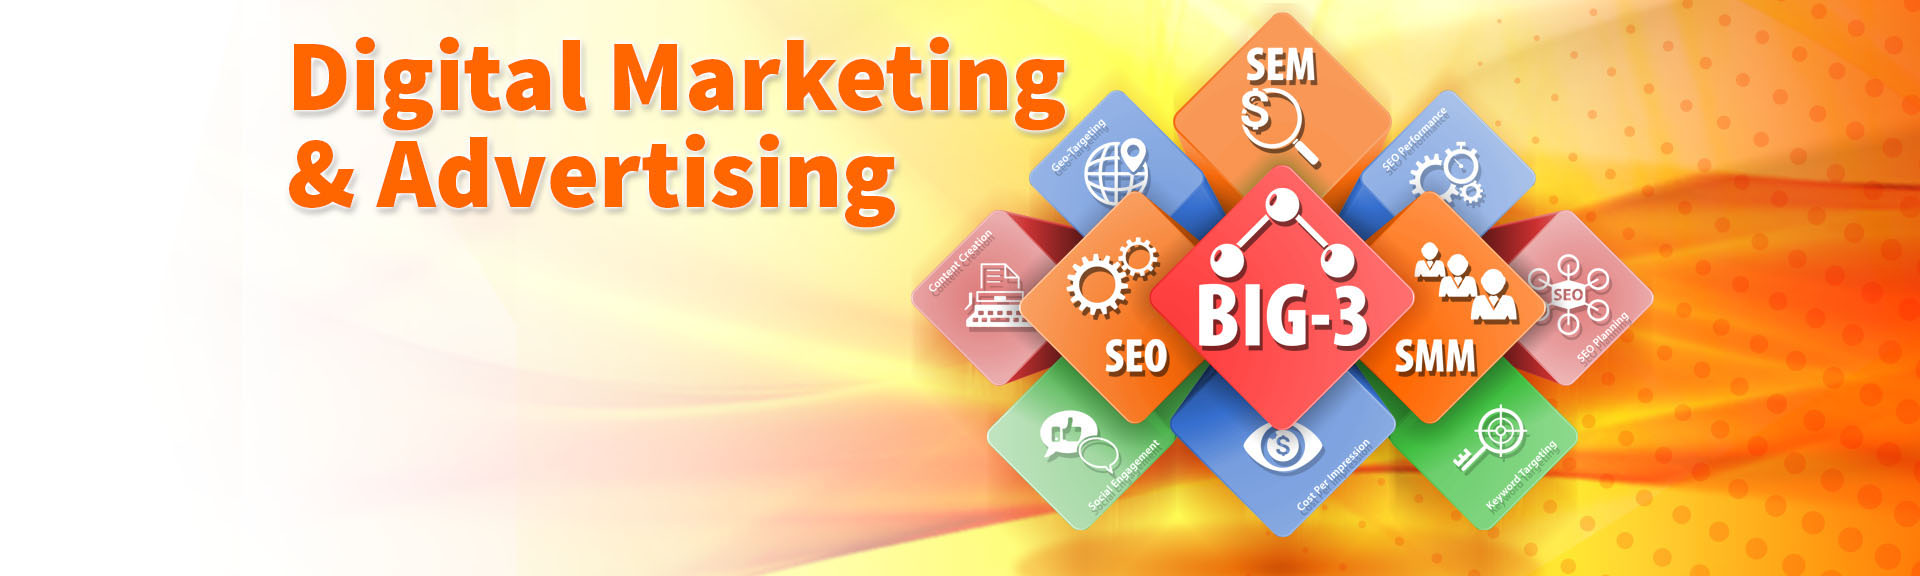 Digital Marketing - Red Crow Marketing